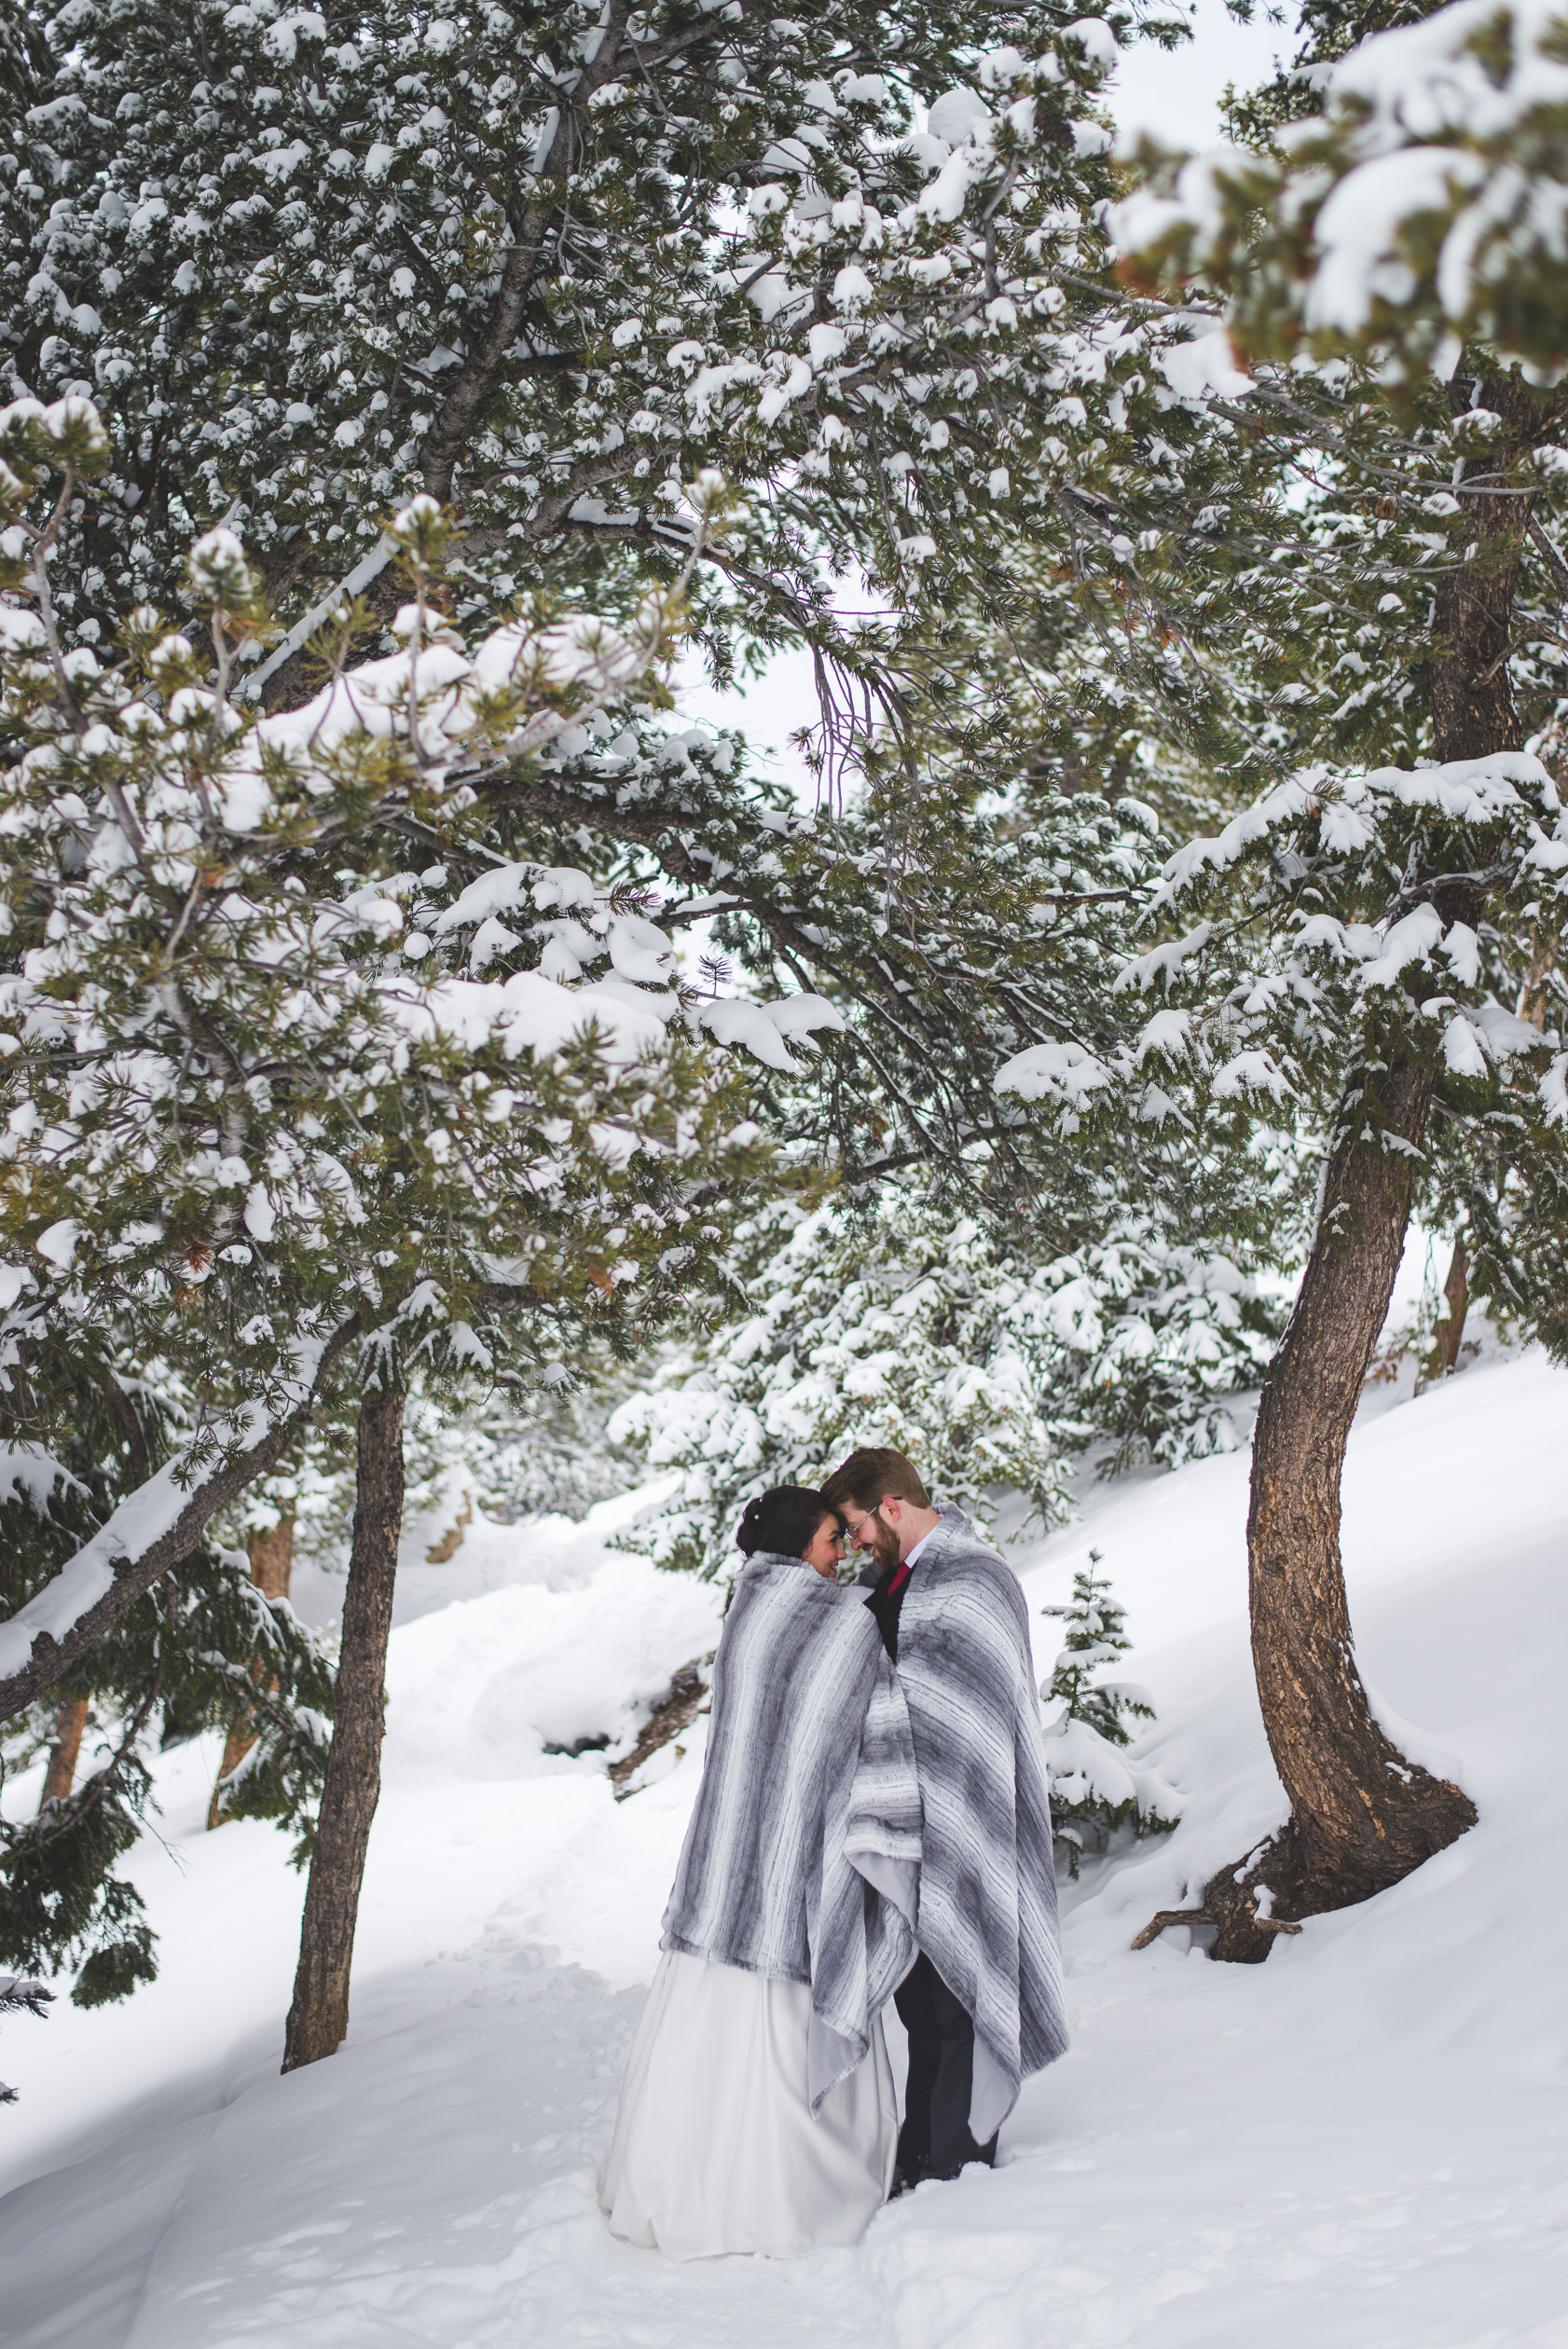 when you elope in Colorado, you bring a big blanket. It might be really cold! It also provides a a great excuse to cuddle up close in the snow...!